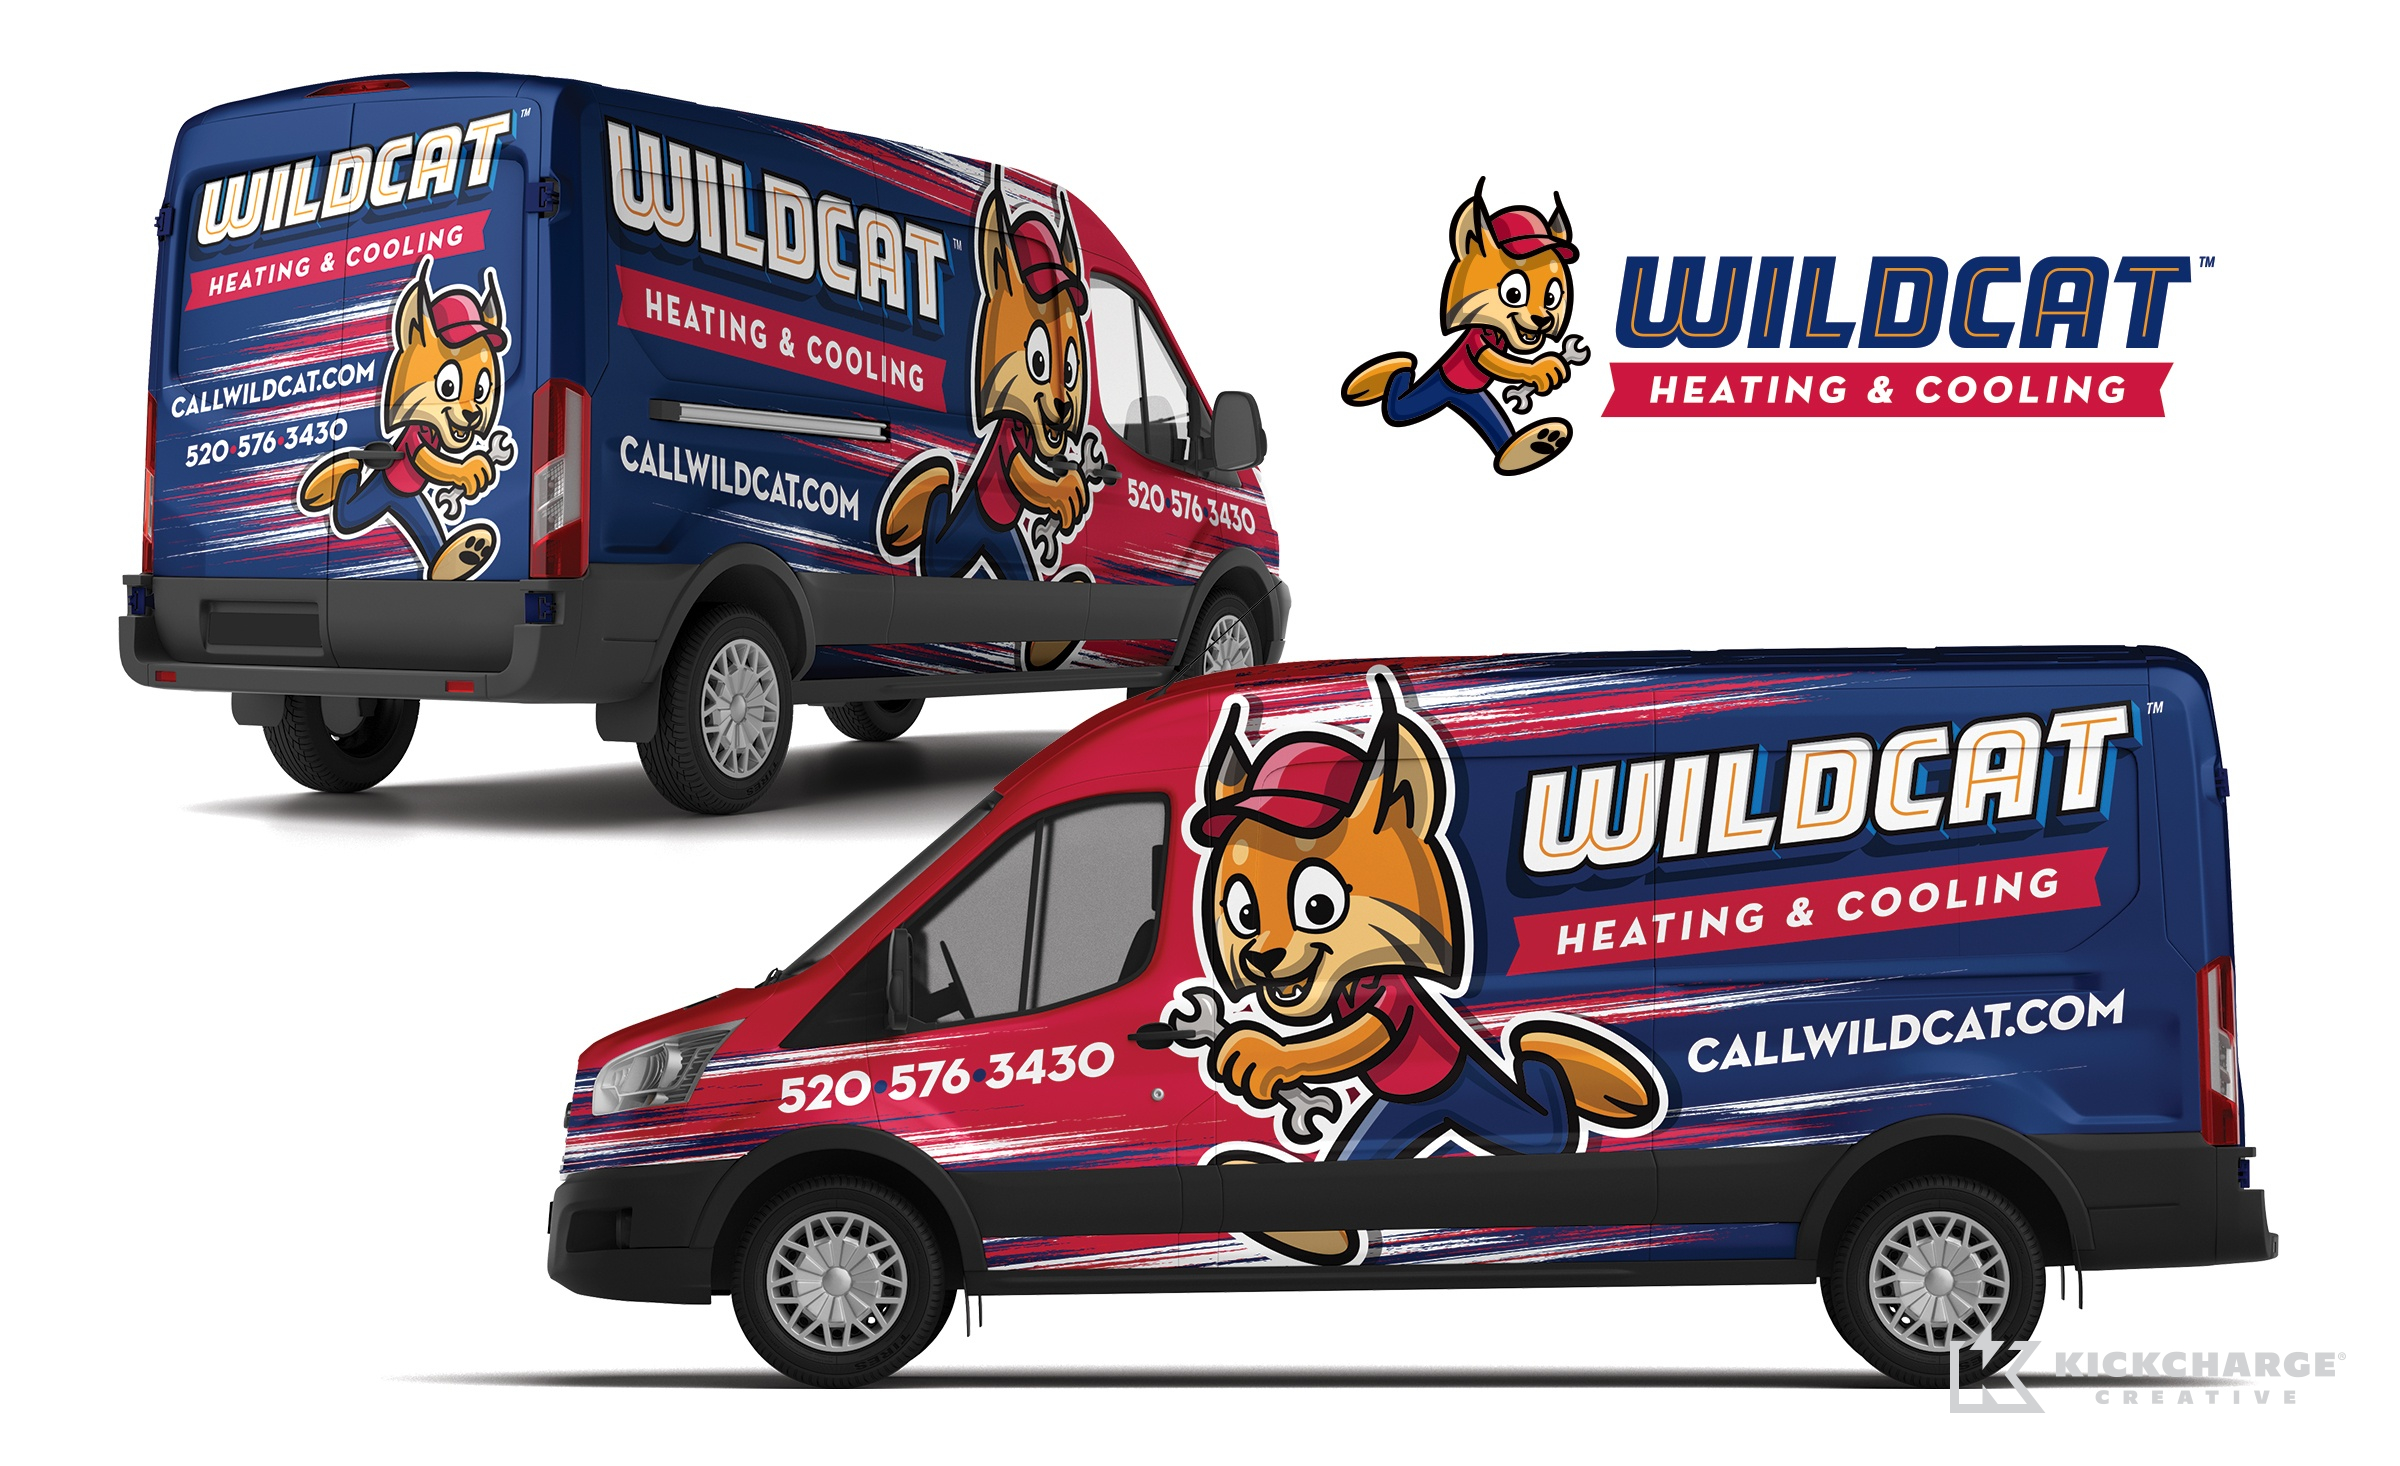 Wildcat Heating & Cooling